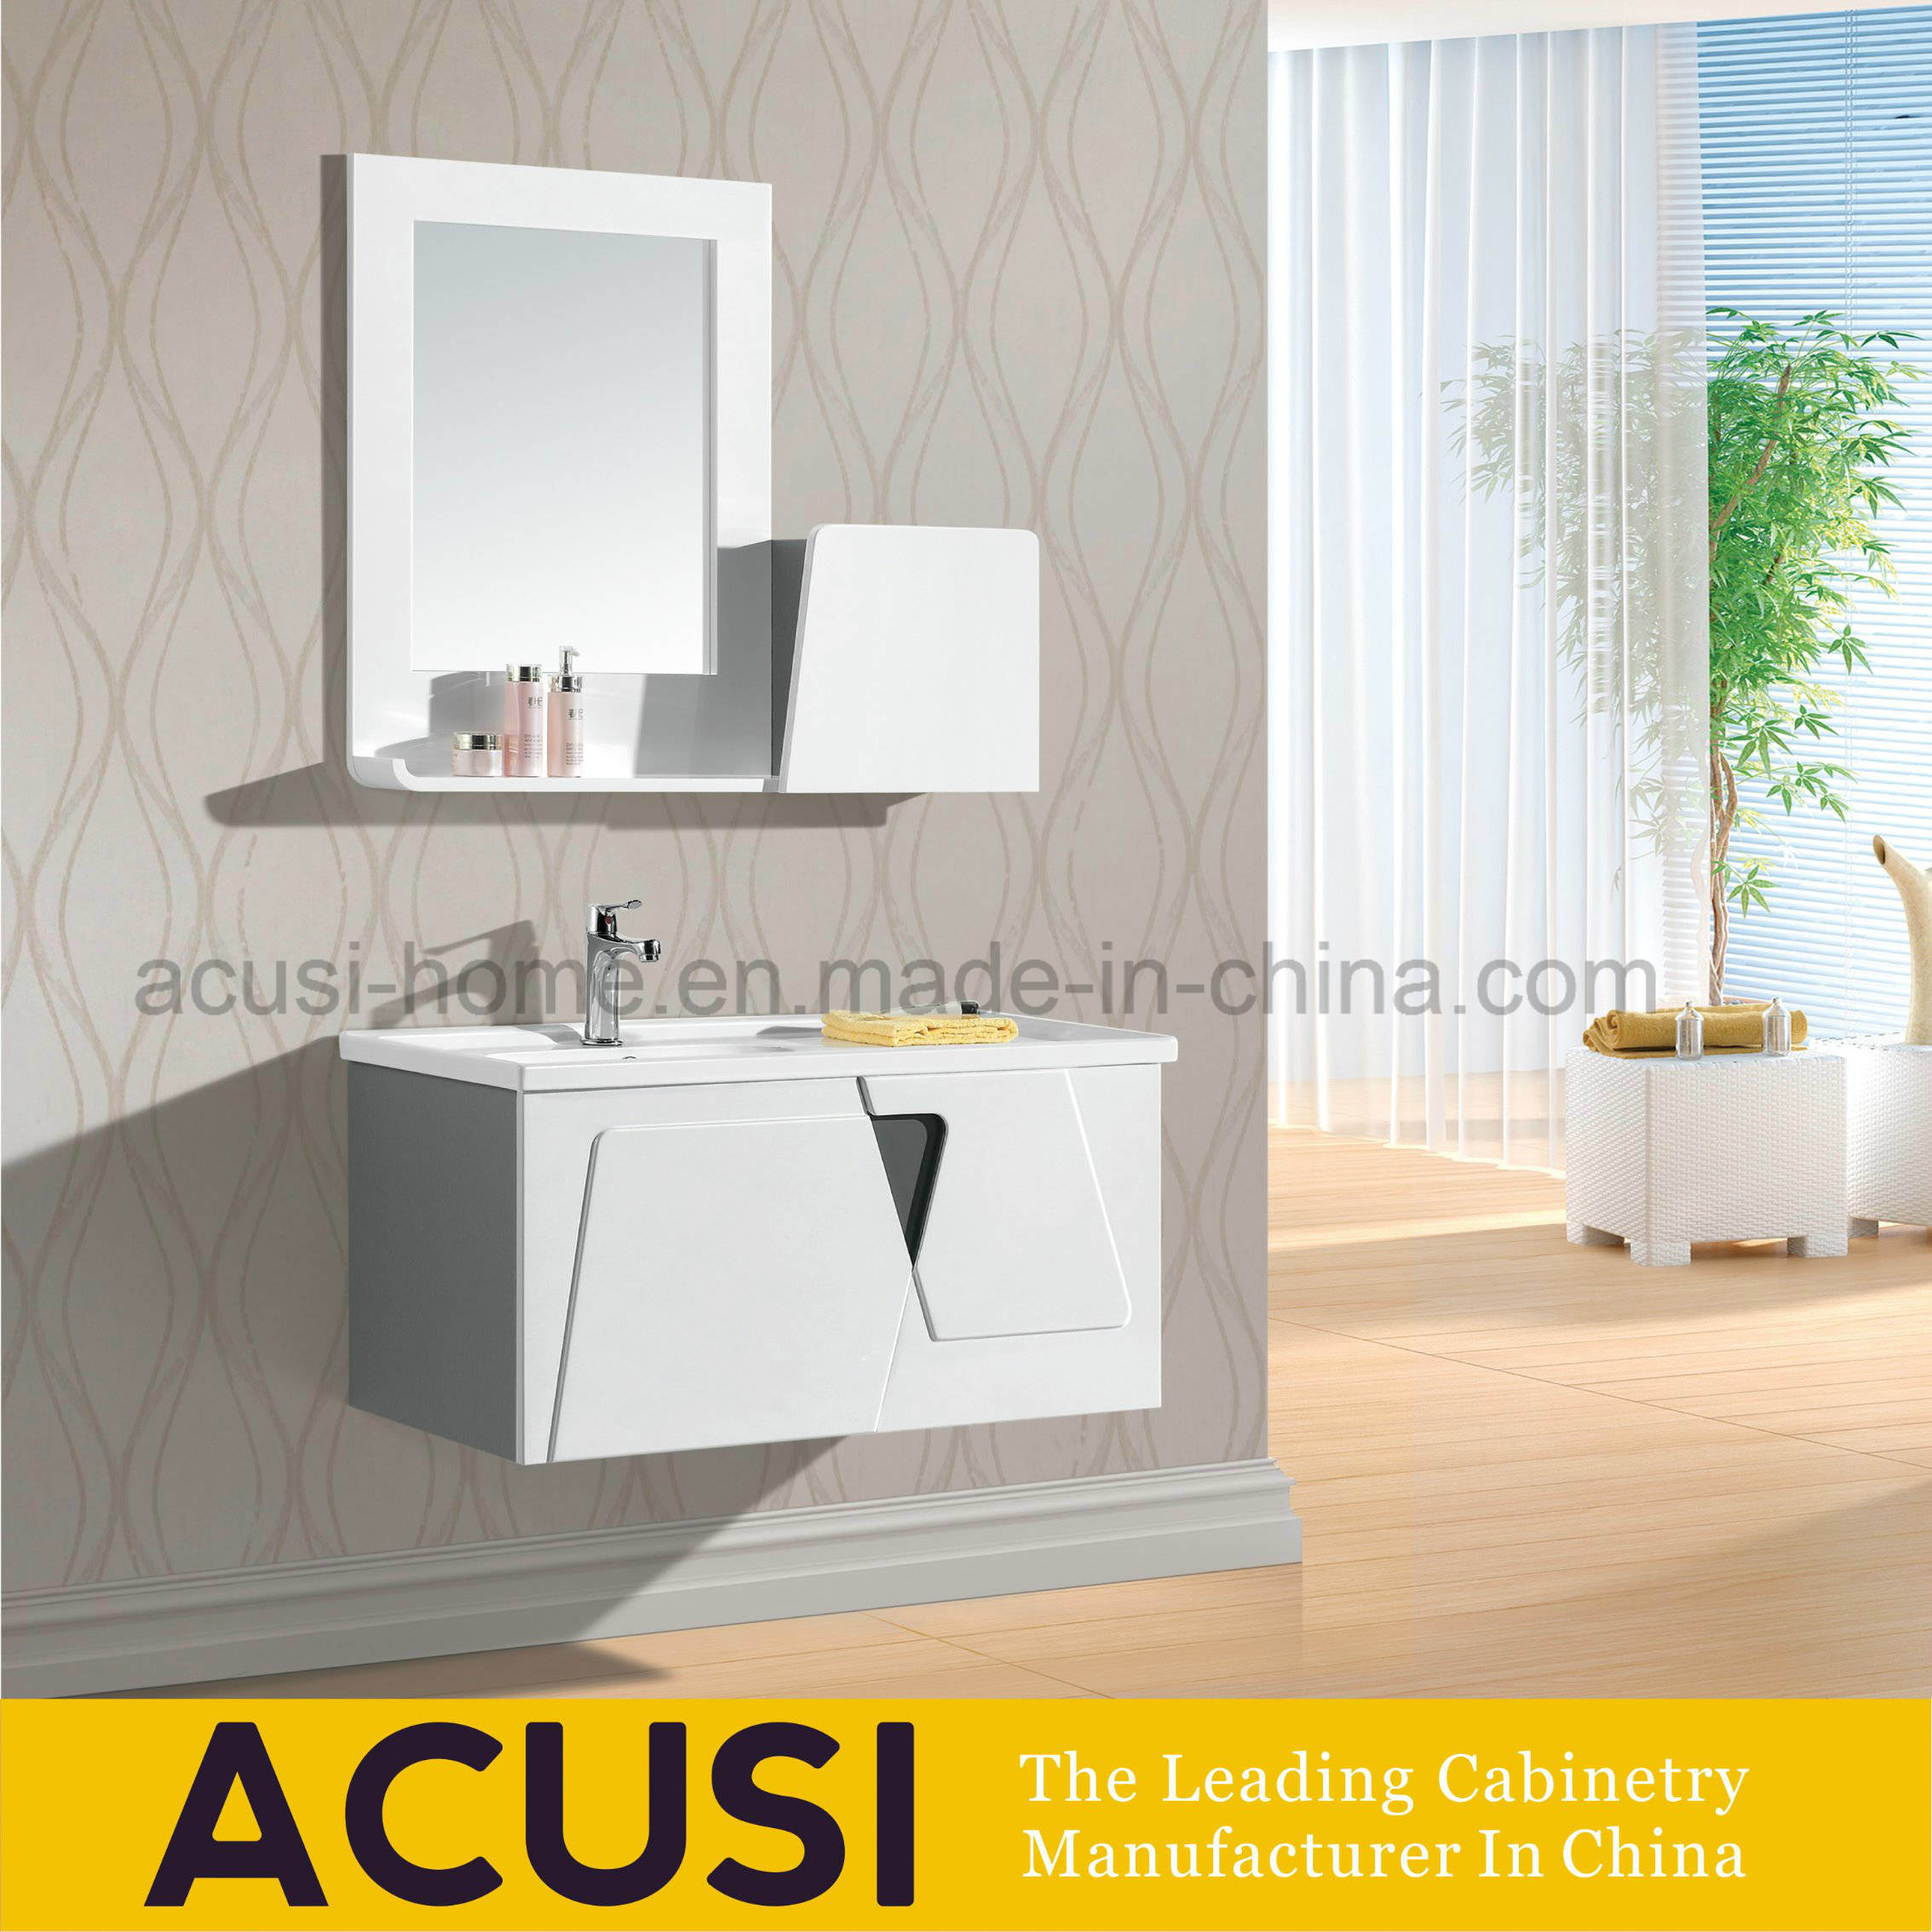 info hanging cabinet dodomi cabinets perfect bathroom wall